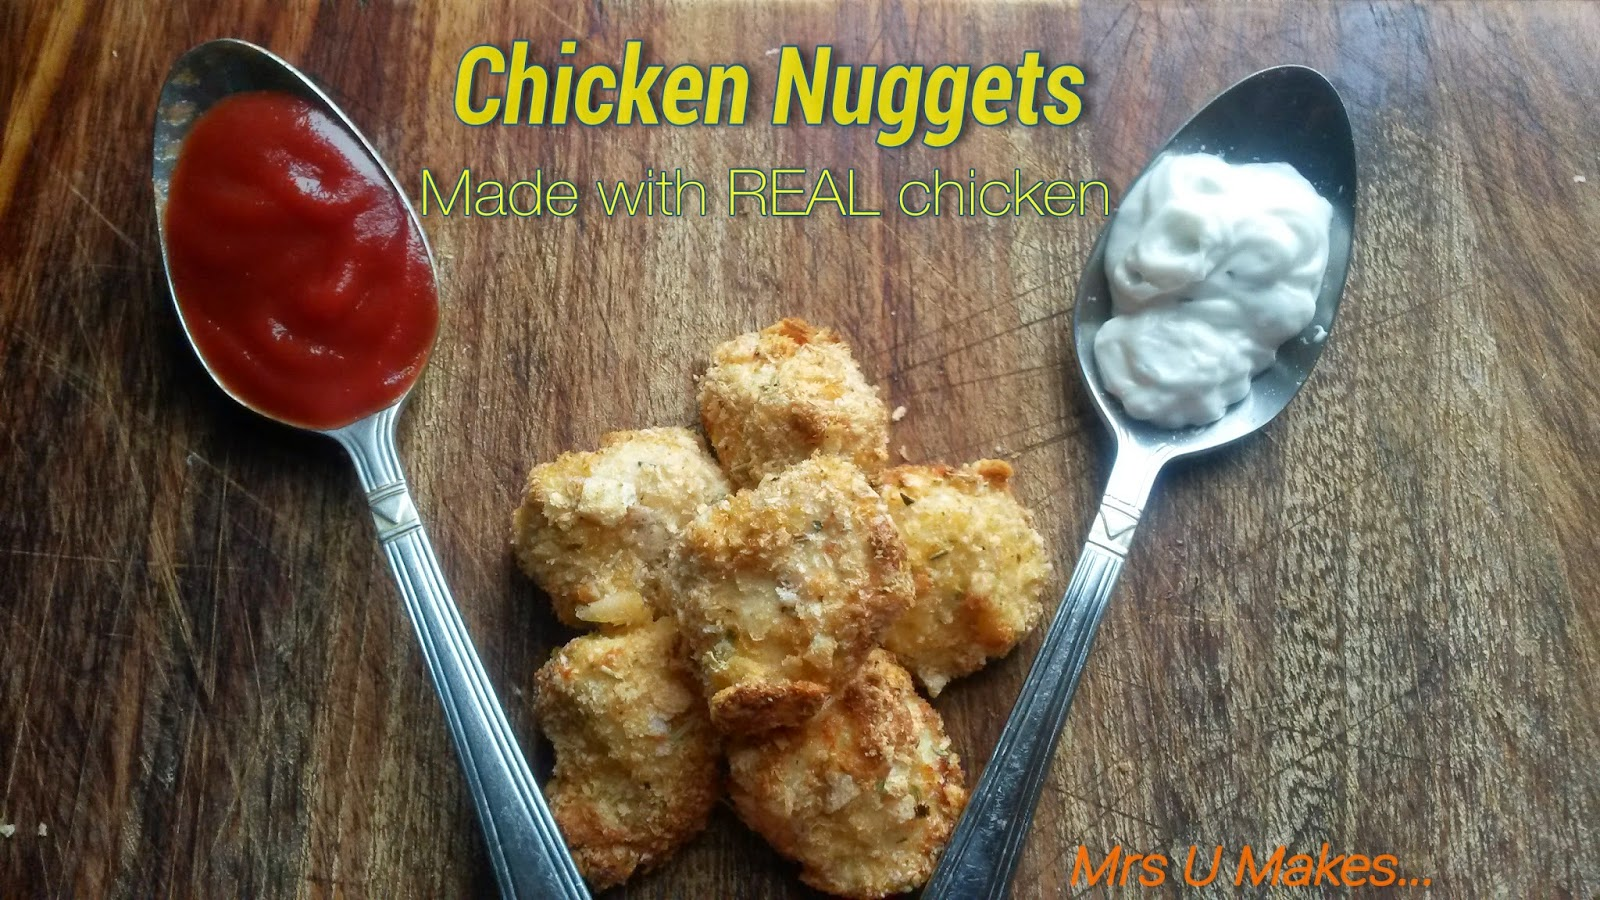 Chicken nuggets recipe. Made with real chicken, so simple.